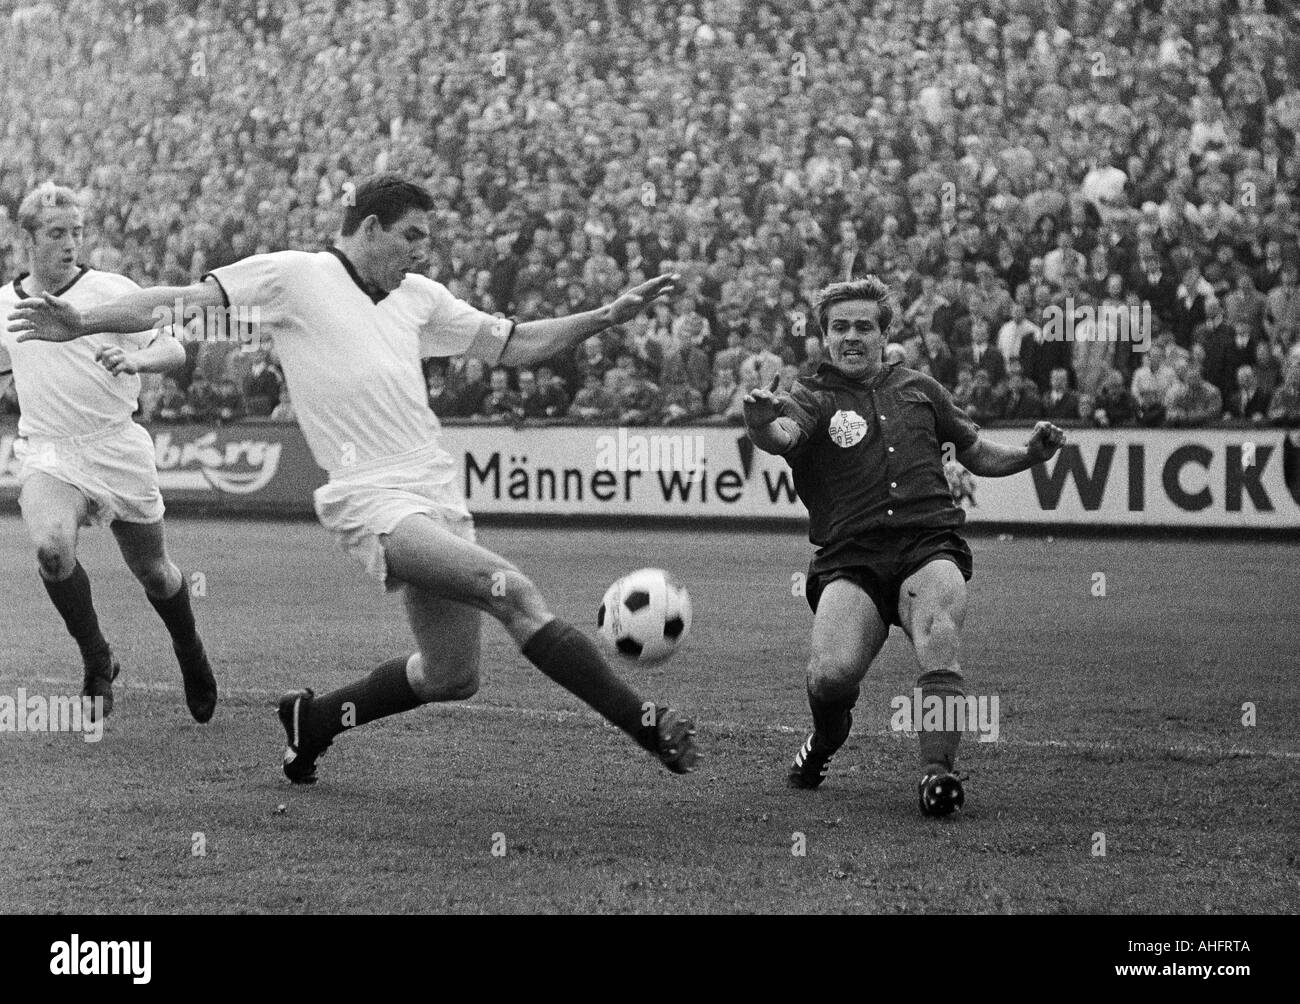 football, Regionalliga West, 1967/1968, ETB Schwarz-Weiss Essen versus Bayer Leverkusen 3:3, Stadium am Uhlenkrug in Essen, scene of the match, duel between Helmut Bruecken (Leverkusen) right and Huelsmann (ETB), left Hermann Bredenfeld (ETB) - Stock Image